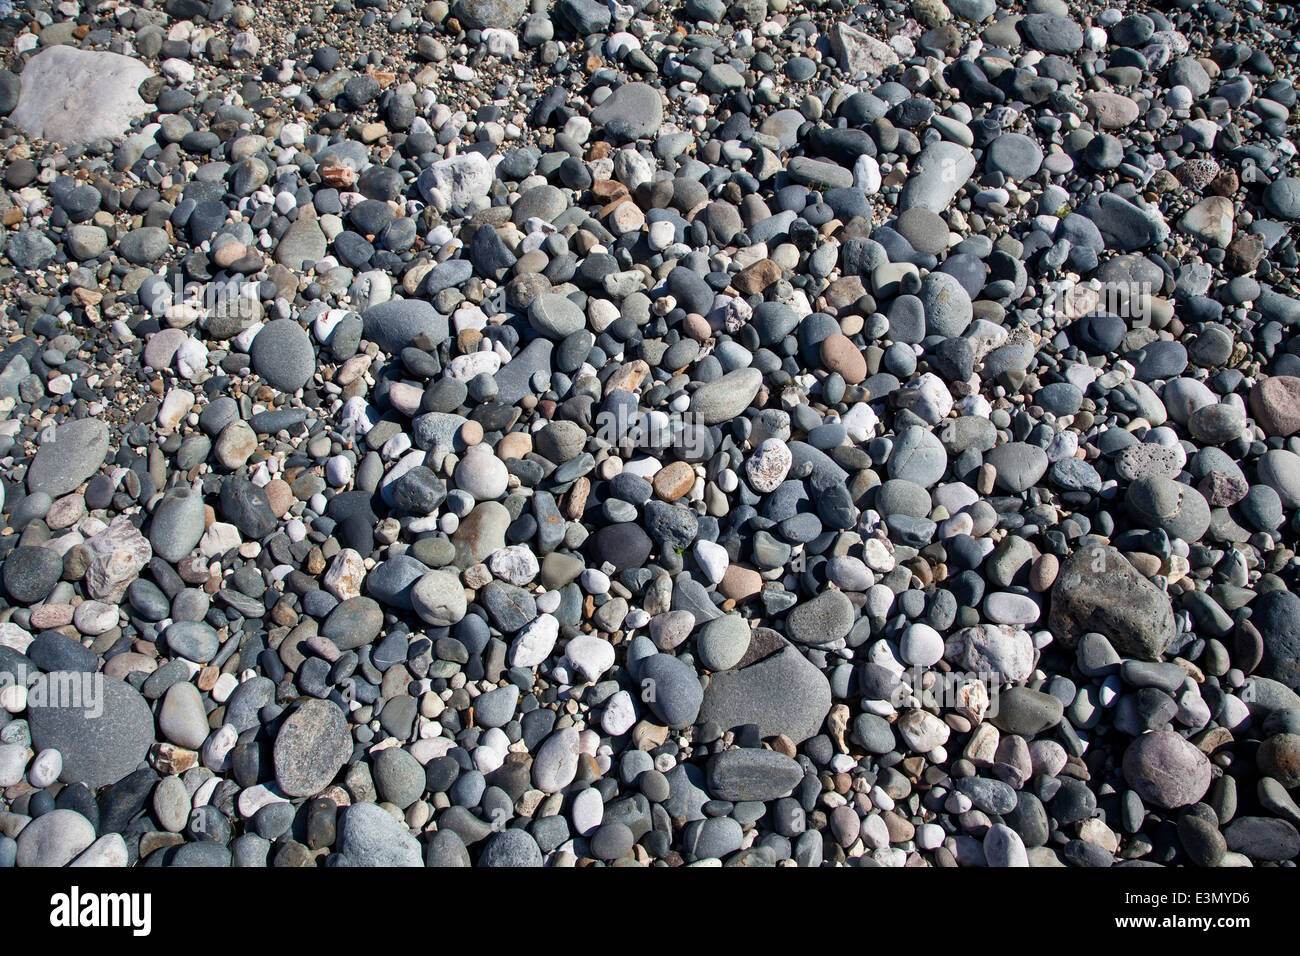 Pebbles and rocks on a stony beach at low tide - Stock Image